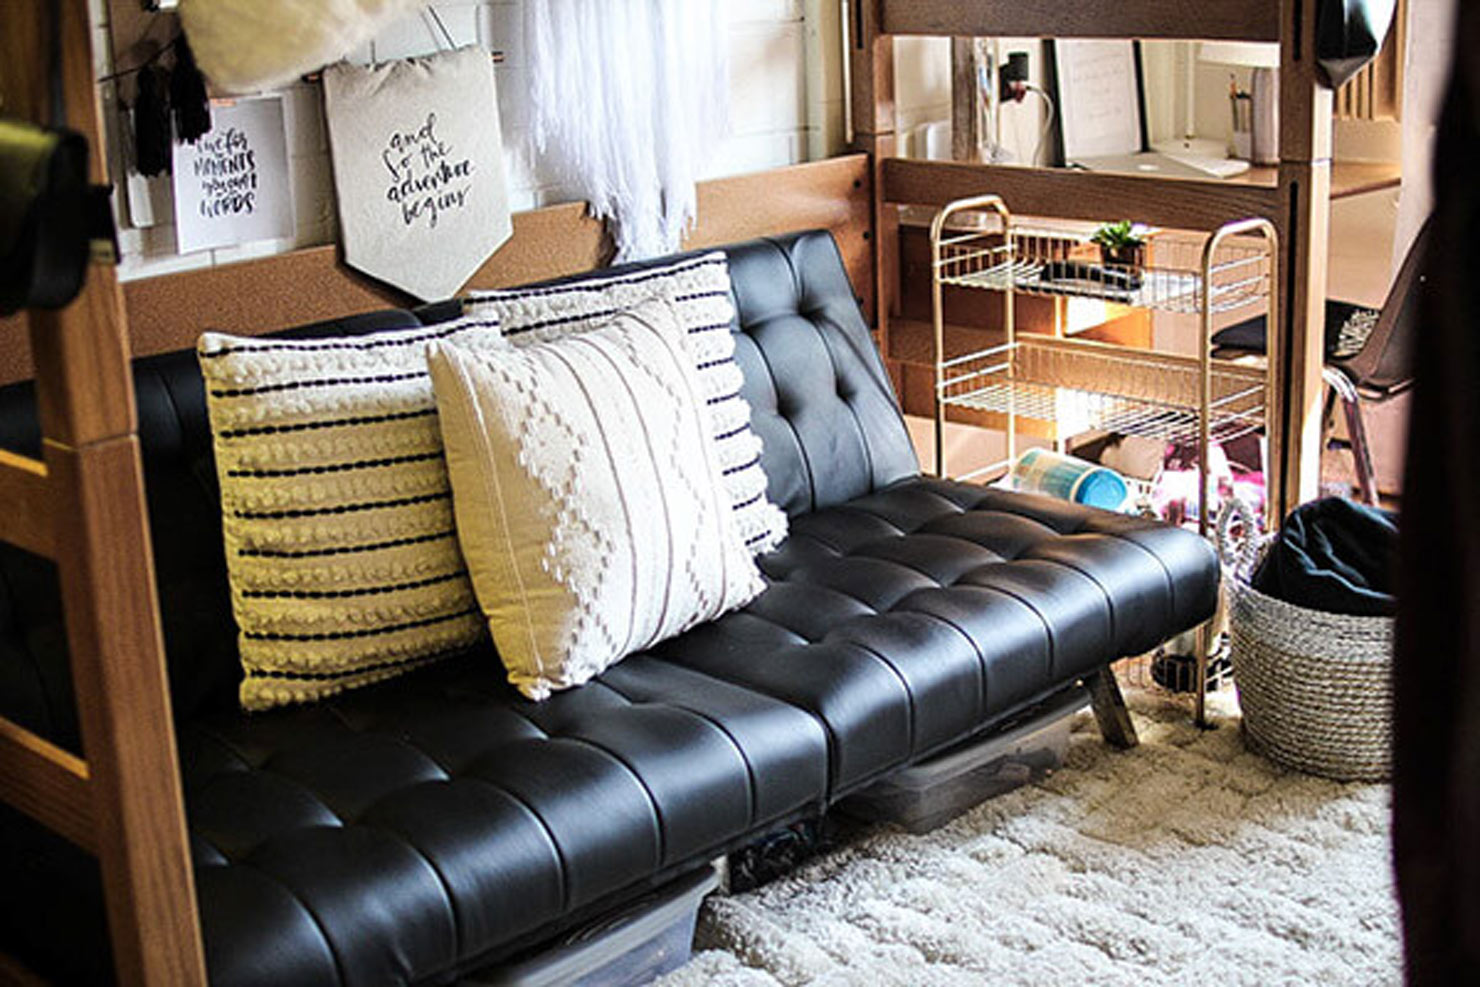 a bunk bed with a black couch below it.